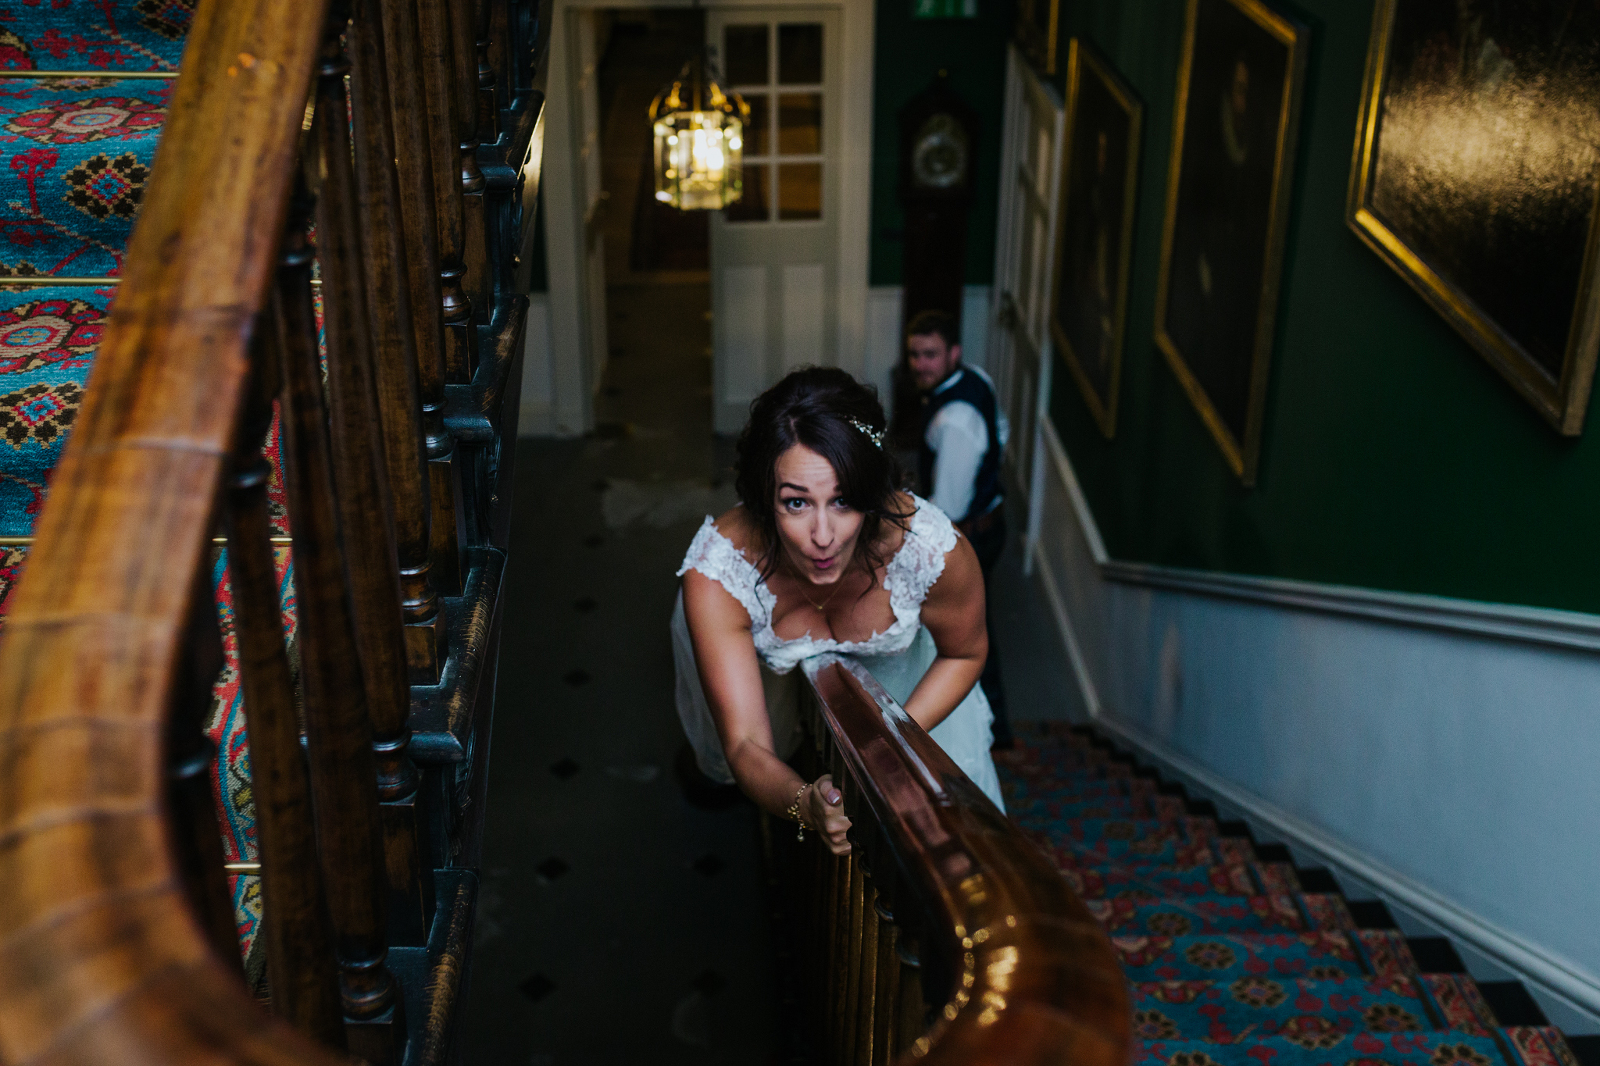 bride-sliding-down-bannister-in-wedding-dress